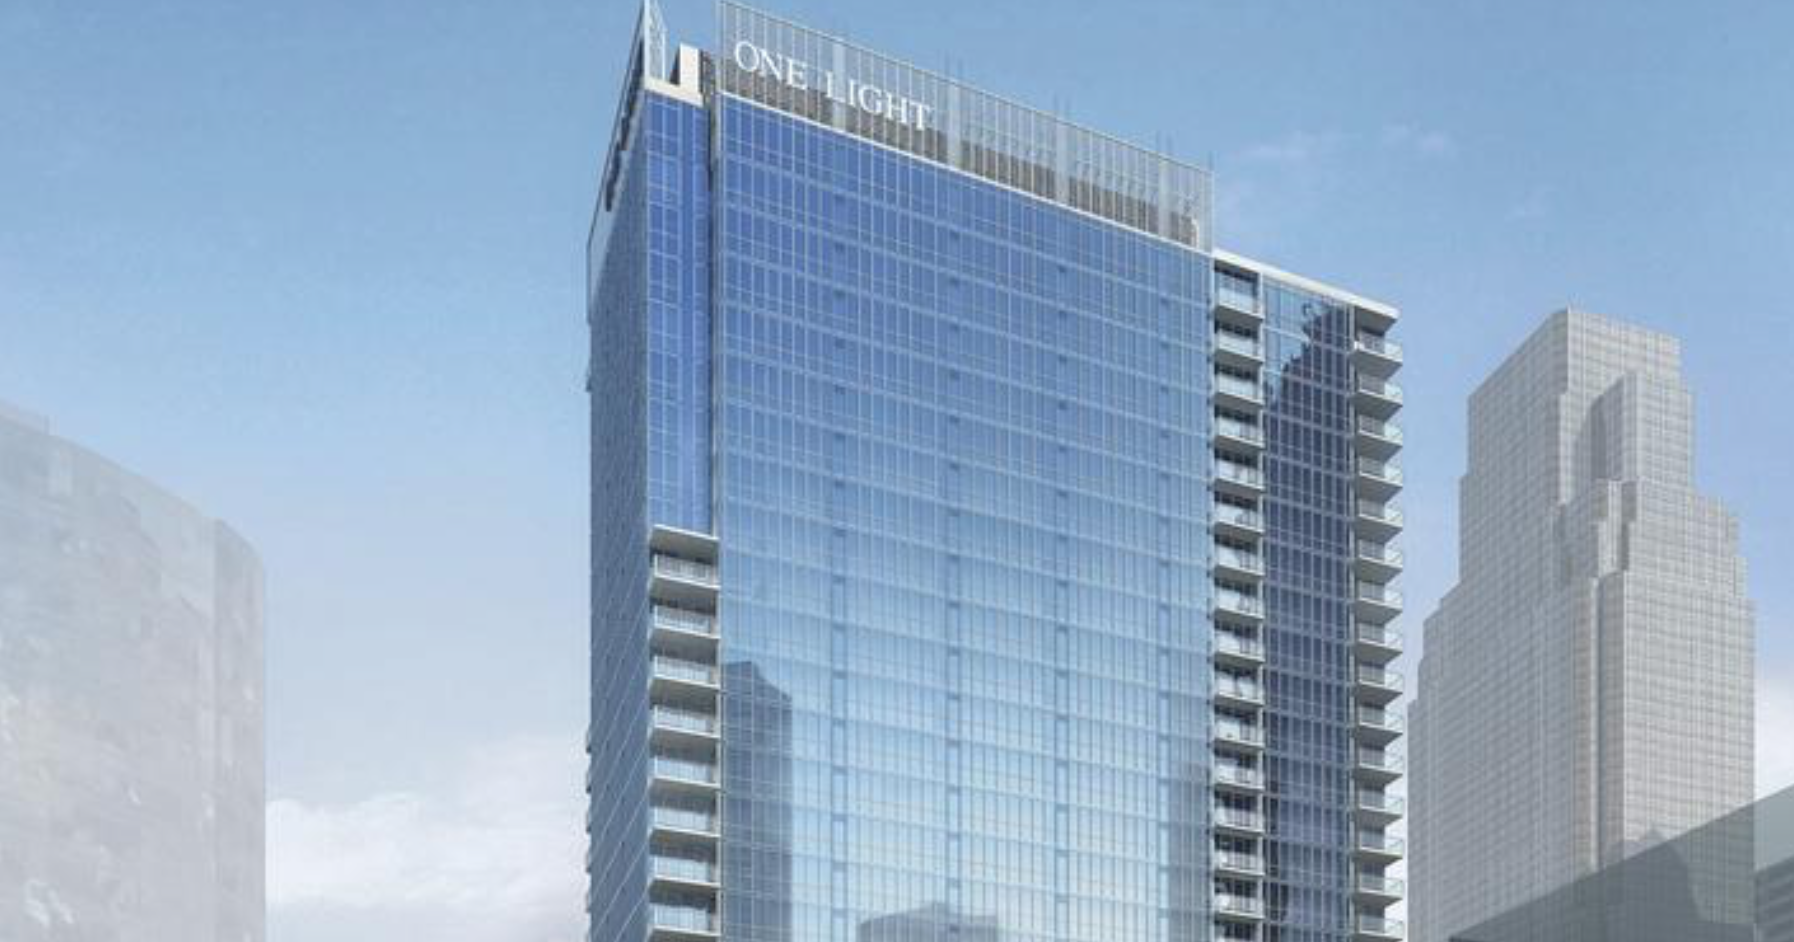 Work on Cordish's One Light Apartment Tower will begin in April